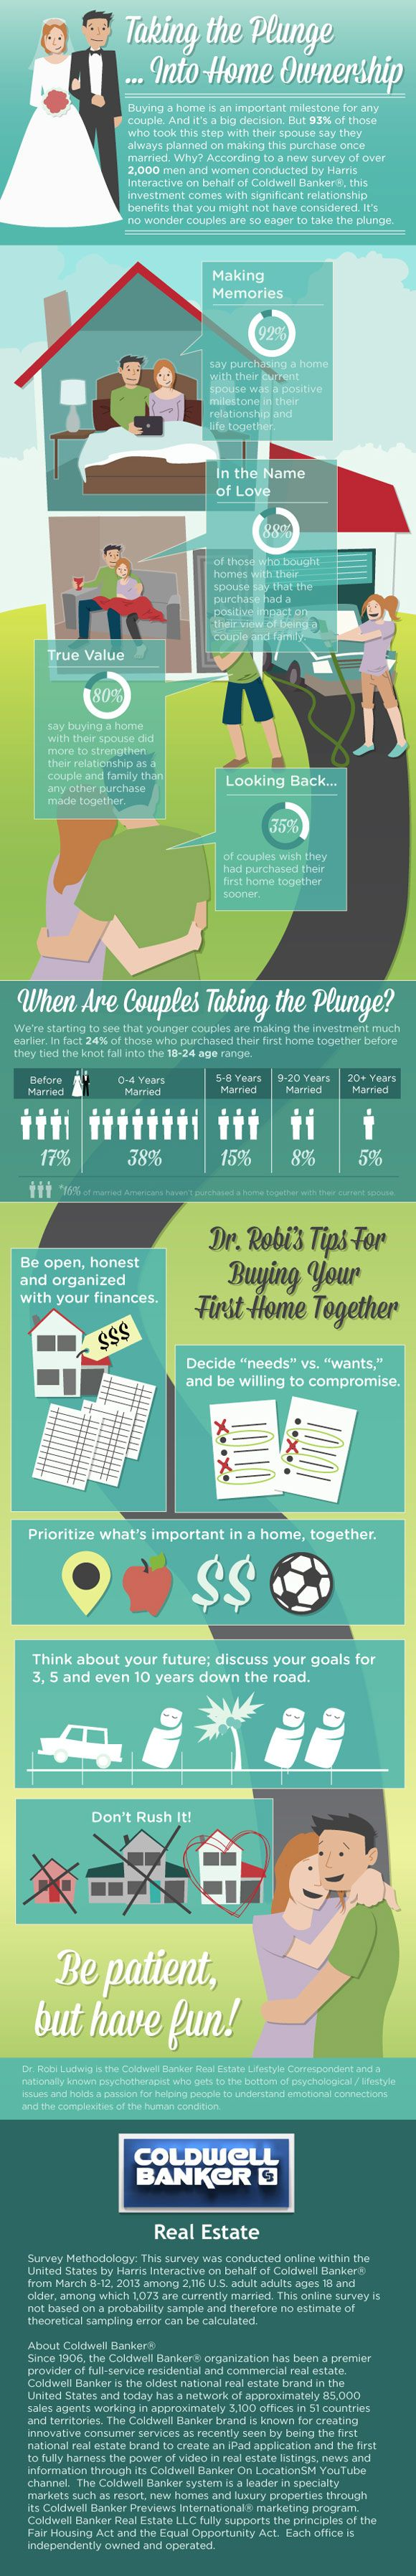 The Emotional Impact of Buying A Home with Your Spouse - Infographic  Christine Groves, Realtor Coldwell Banker Residential in Chicagoland www.Groves-Realty.com